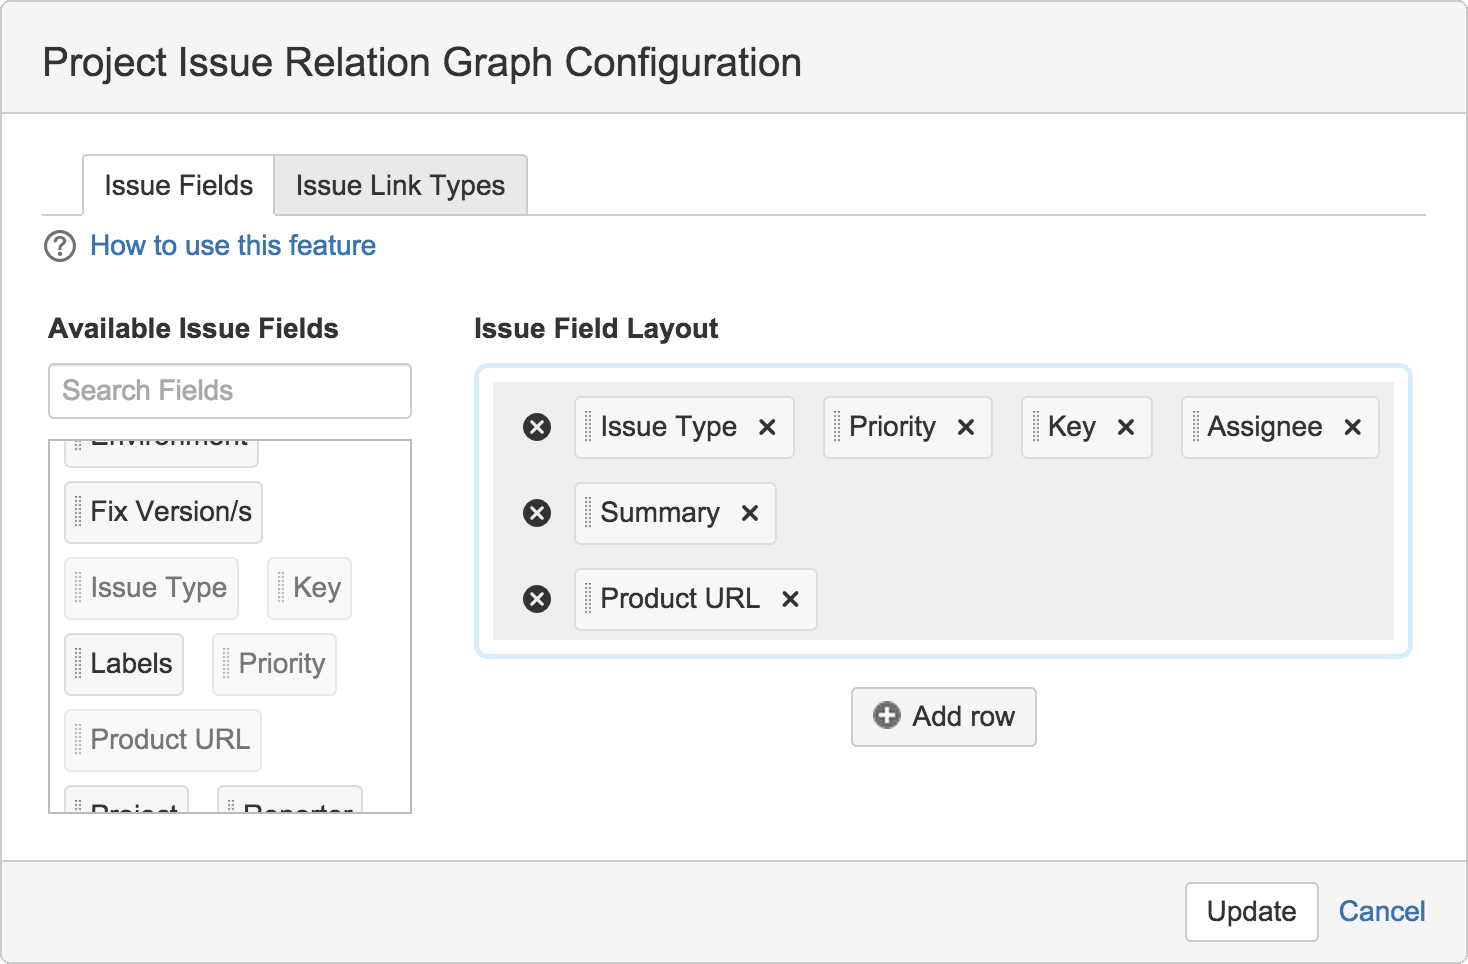 Figure: Project Issue Relation Graph Configuration dialog open to Issue Fields tab